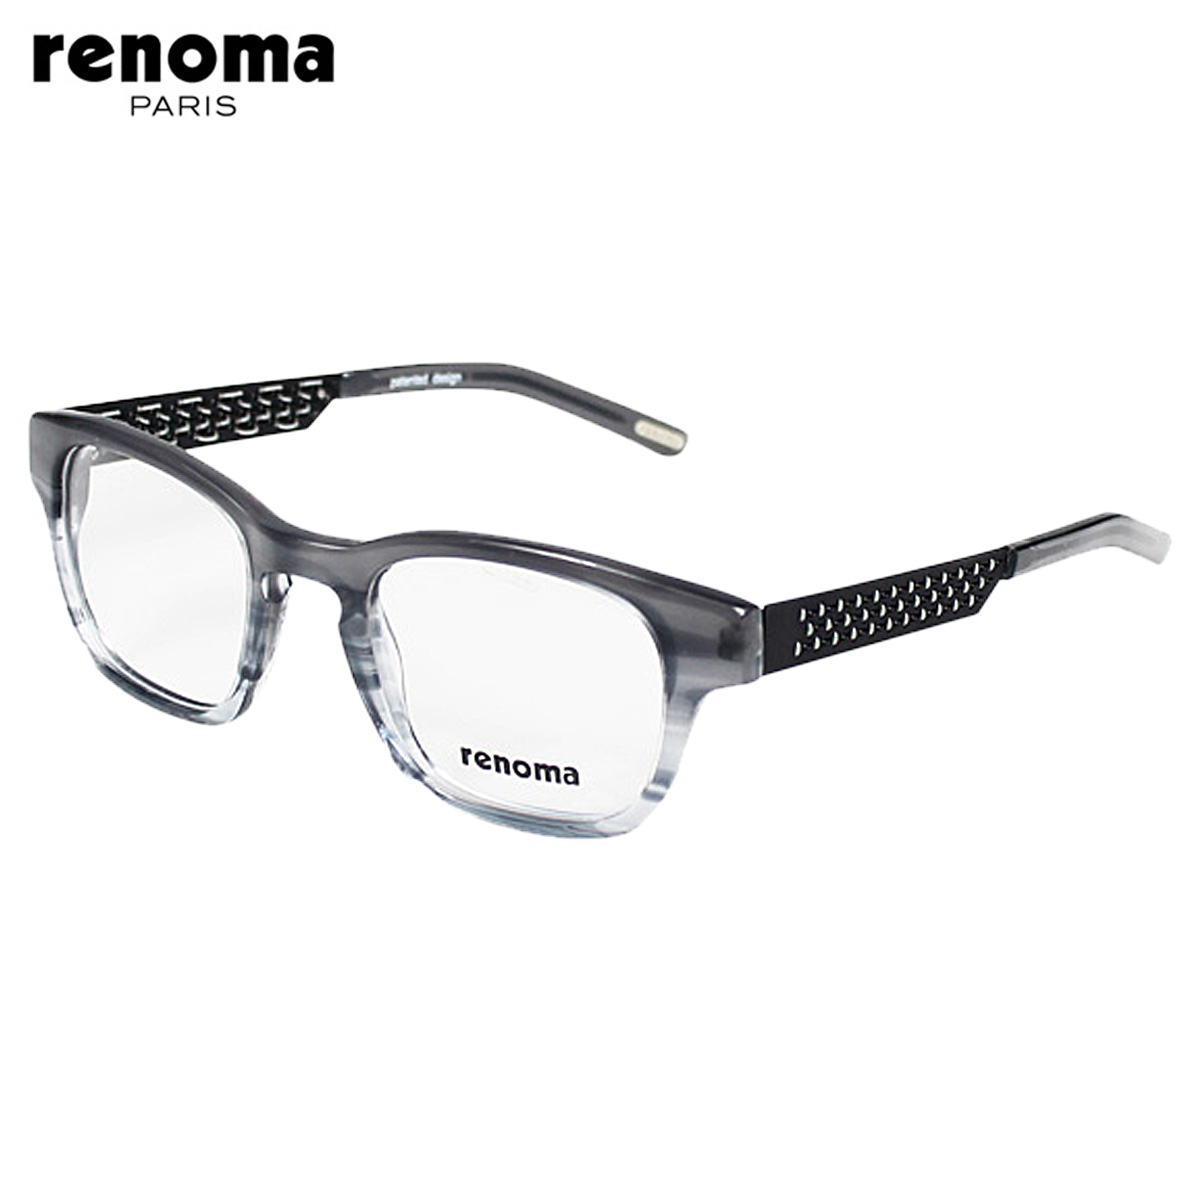 06062efcd8 Sugar Online Shop  Point 10 x renoma renoma glasses glasses  Black ...